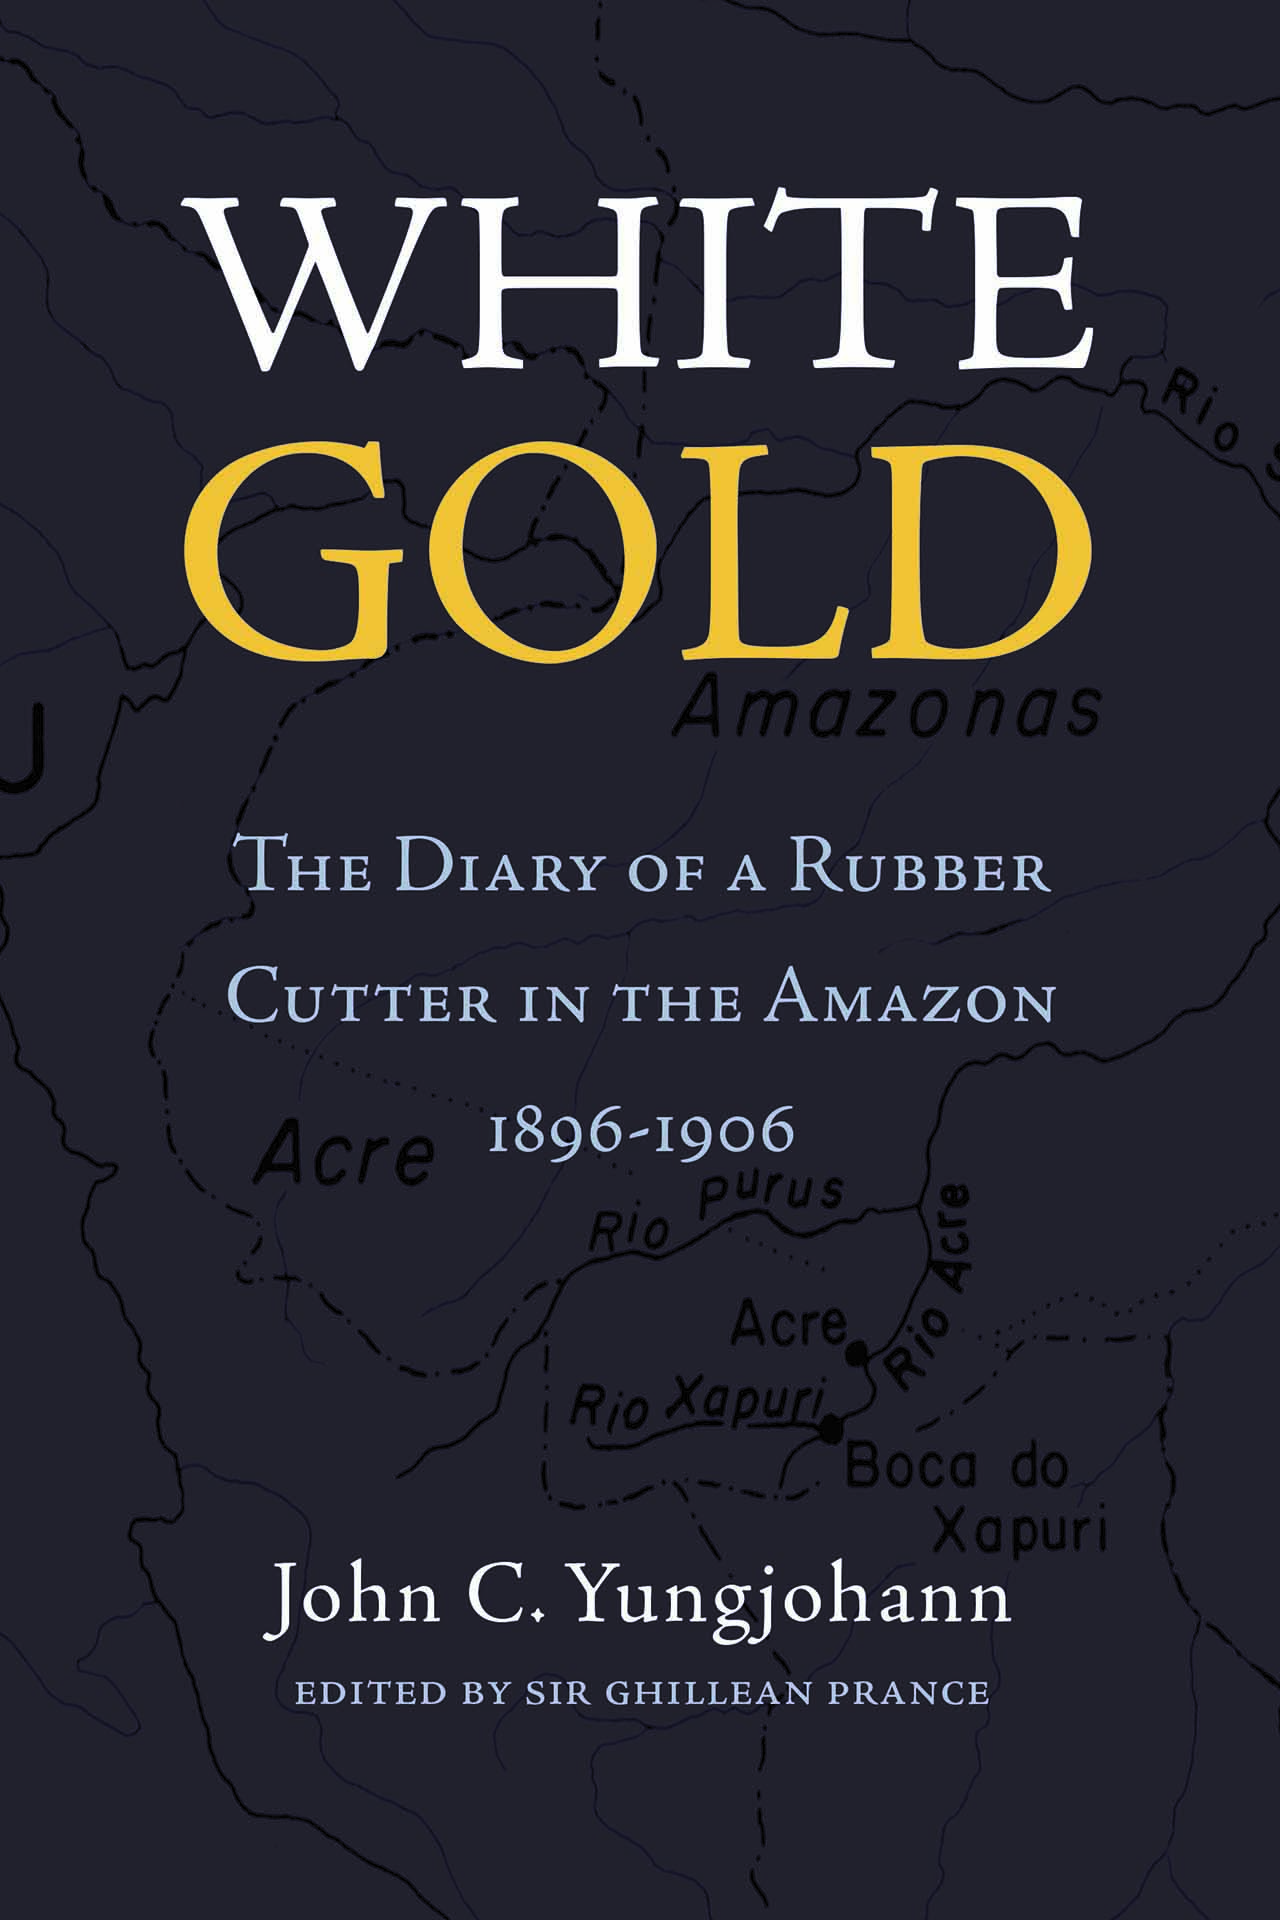 White Gold: the Diary of a Rubber Cutter in the Amazon